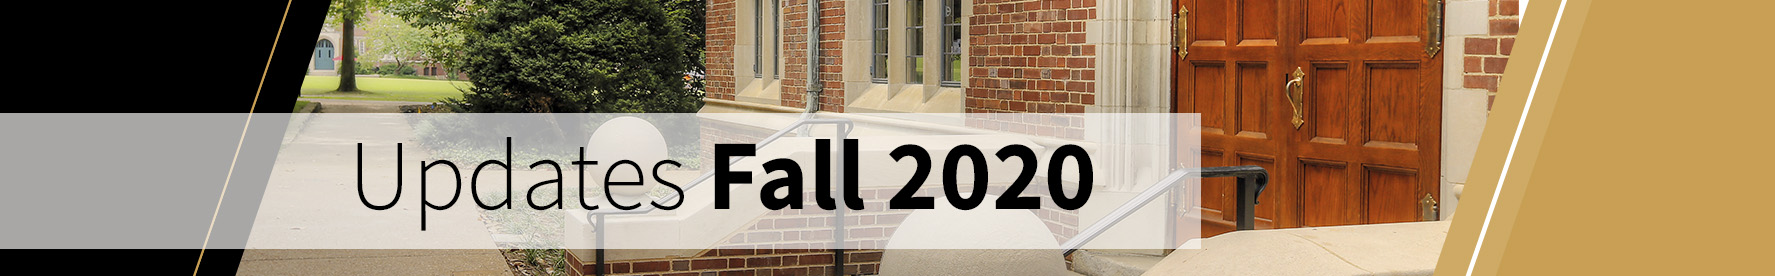 banner that says updates fall 2020